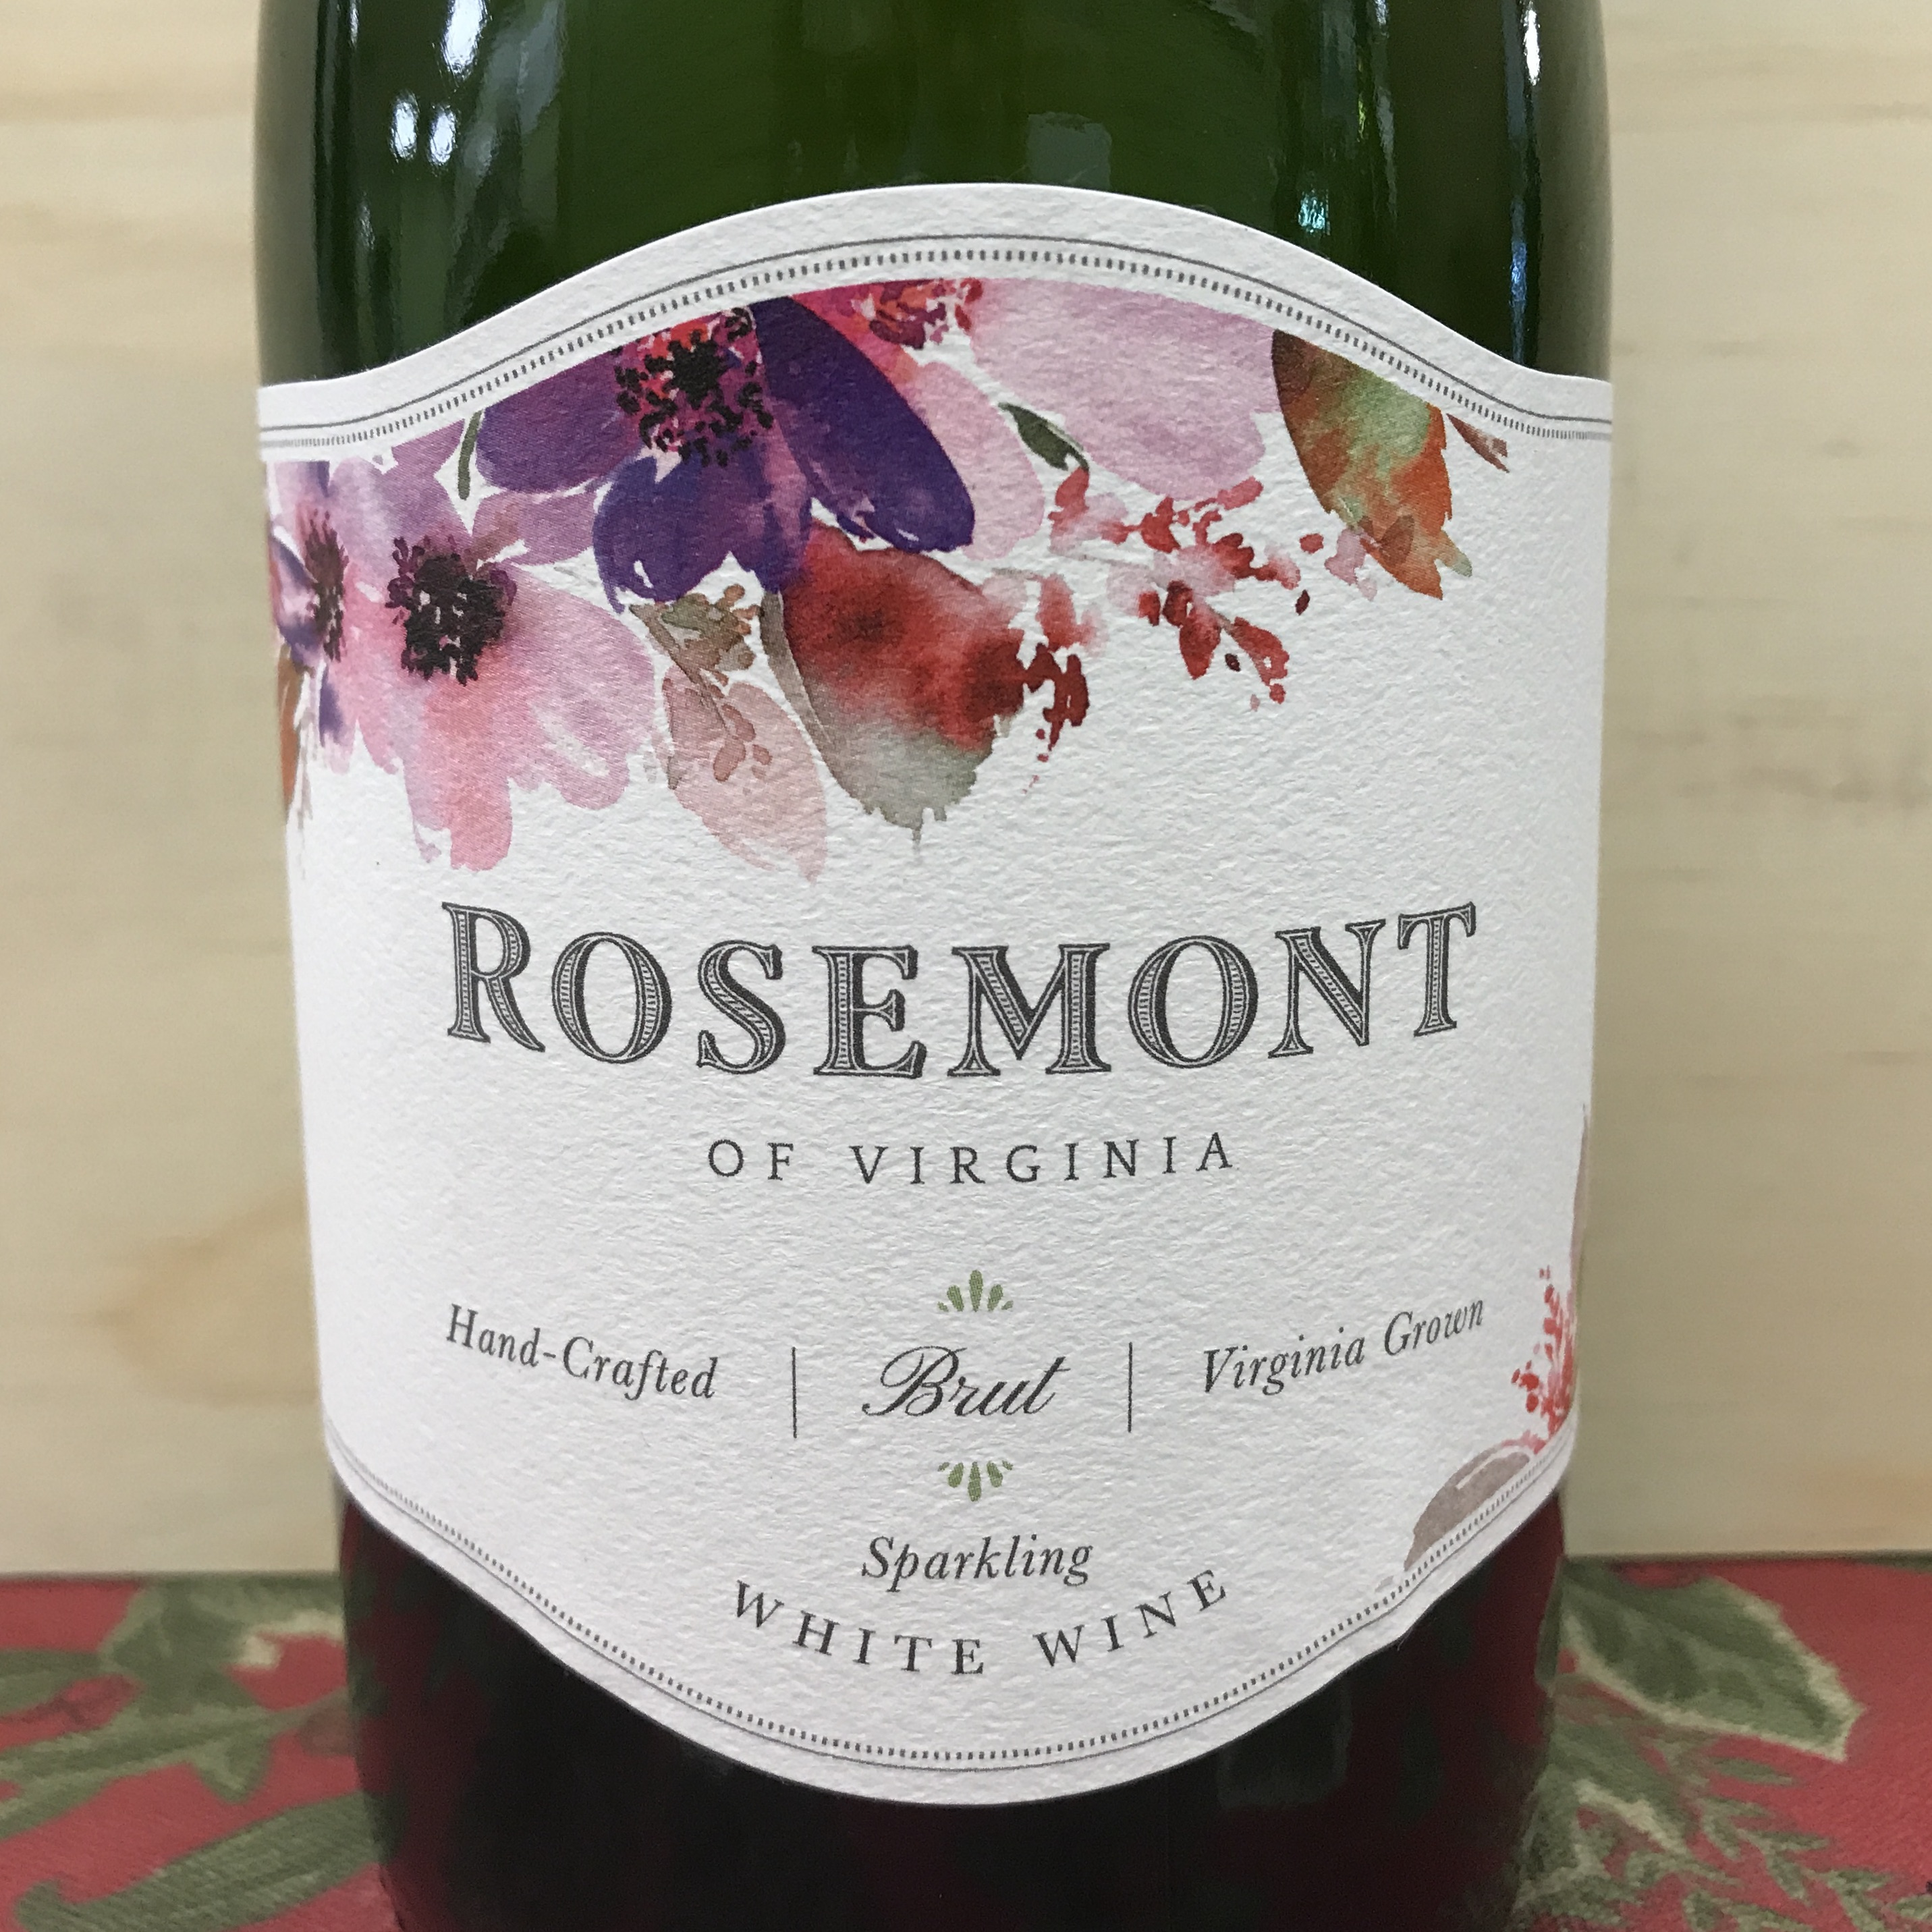 Rosemont Winery Sparkling White Wine Brut NV